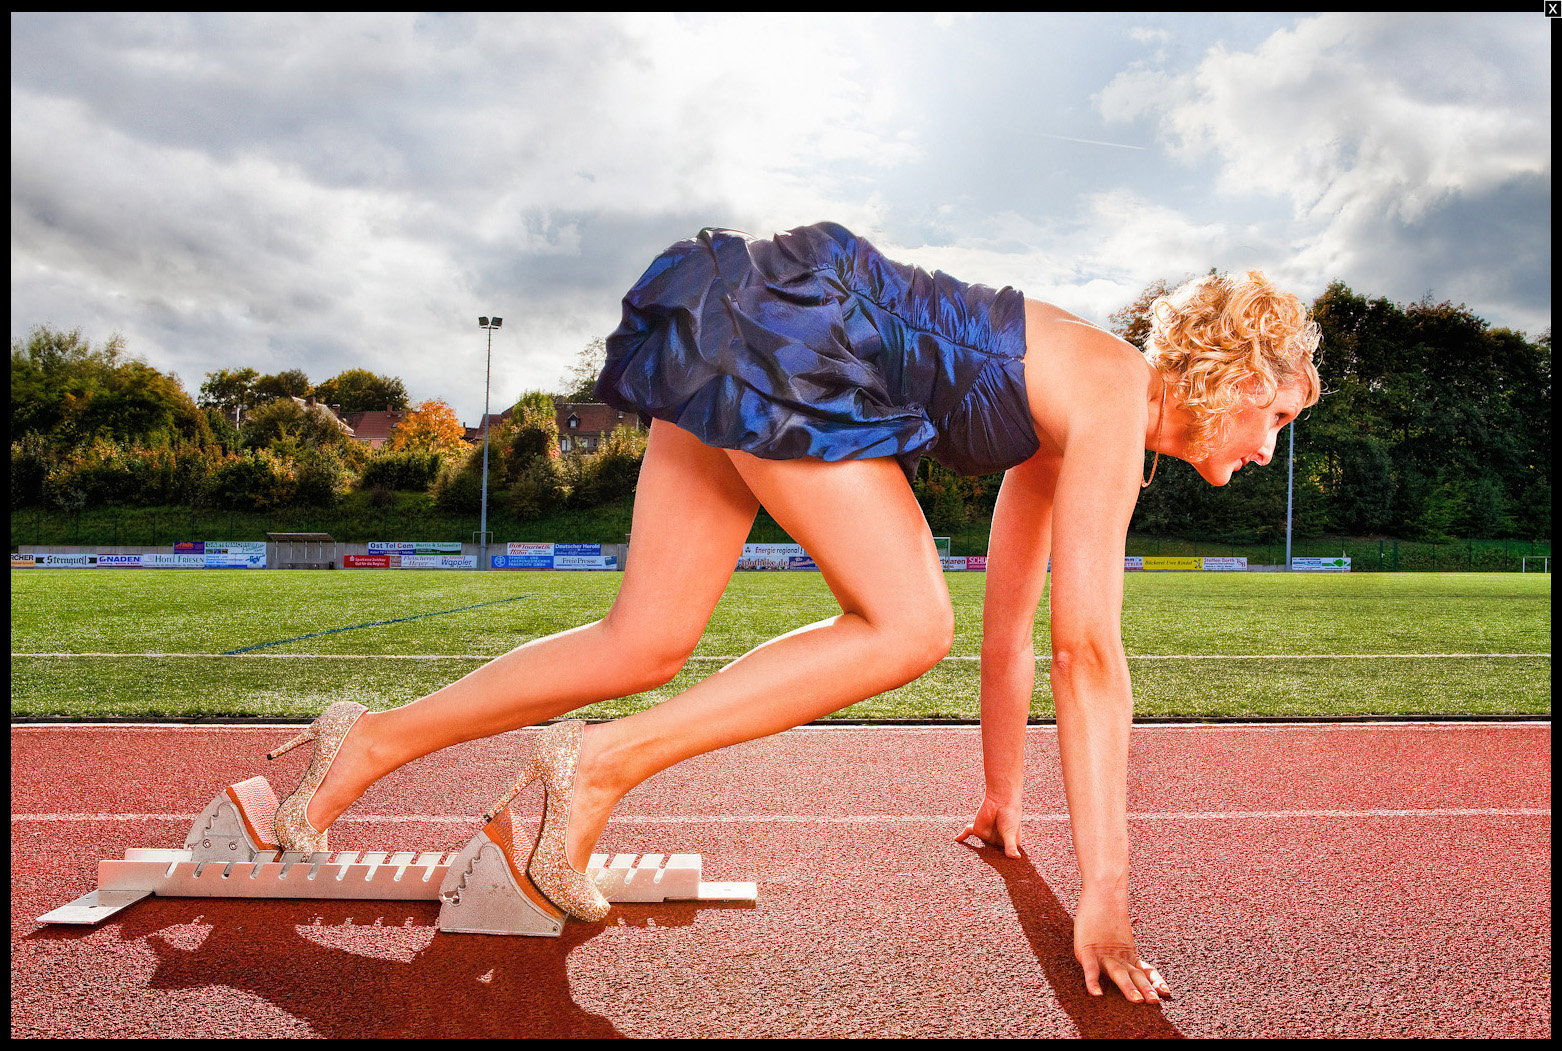 World's Fastest 100m In High Heels